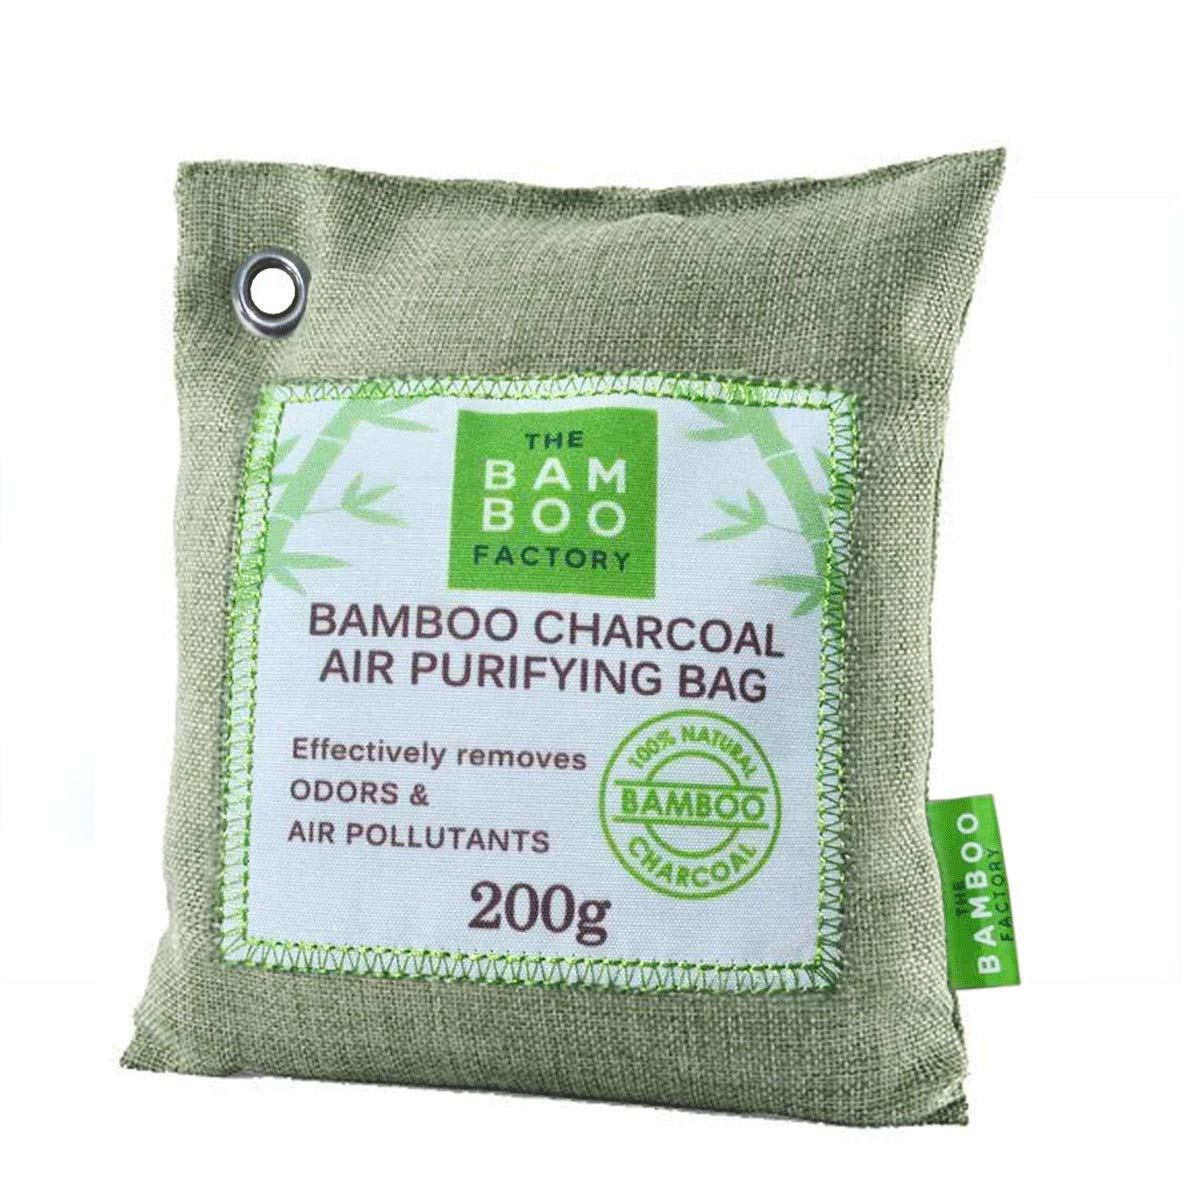 Activated Bamboo Charcoal Chemical Free Natural Air Purifier & Freshener, Pack of 2 The Bamboo Factory